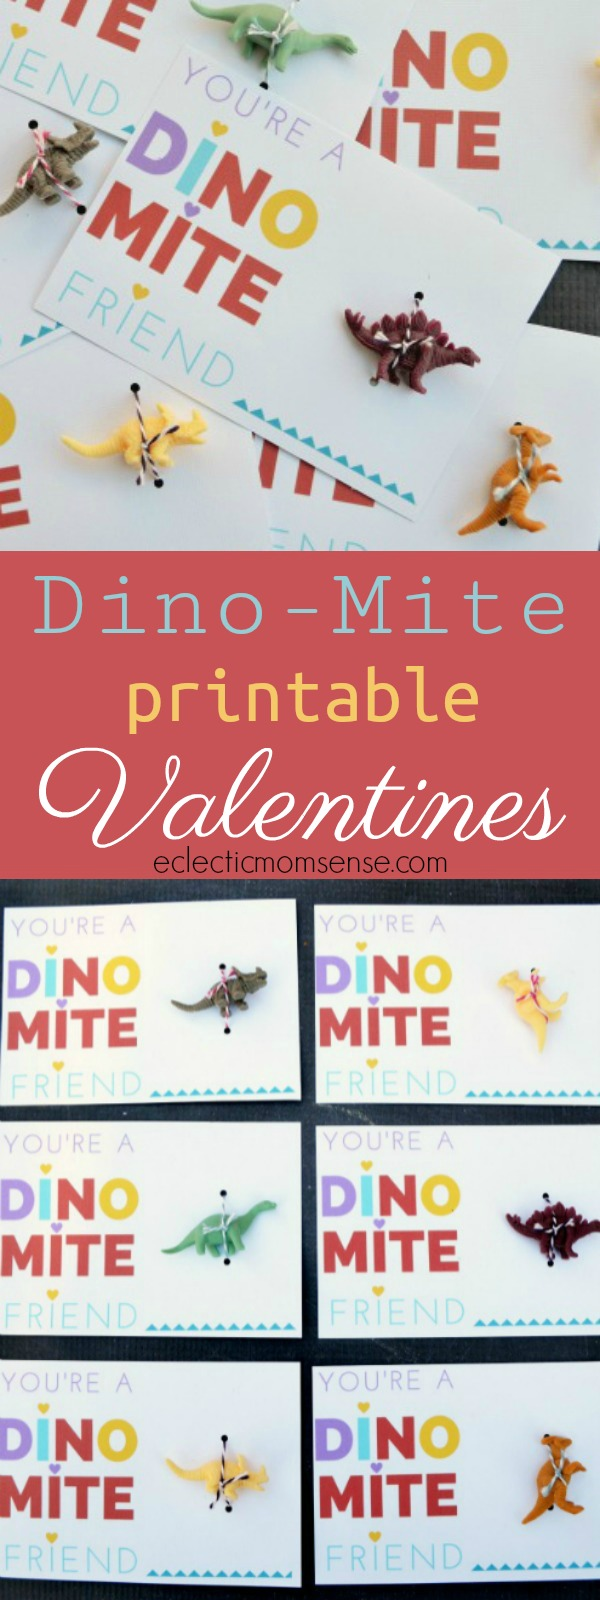 printable dino-mite friend Valentine card